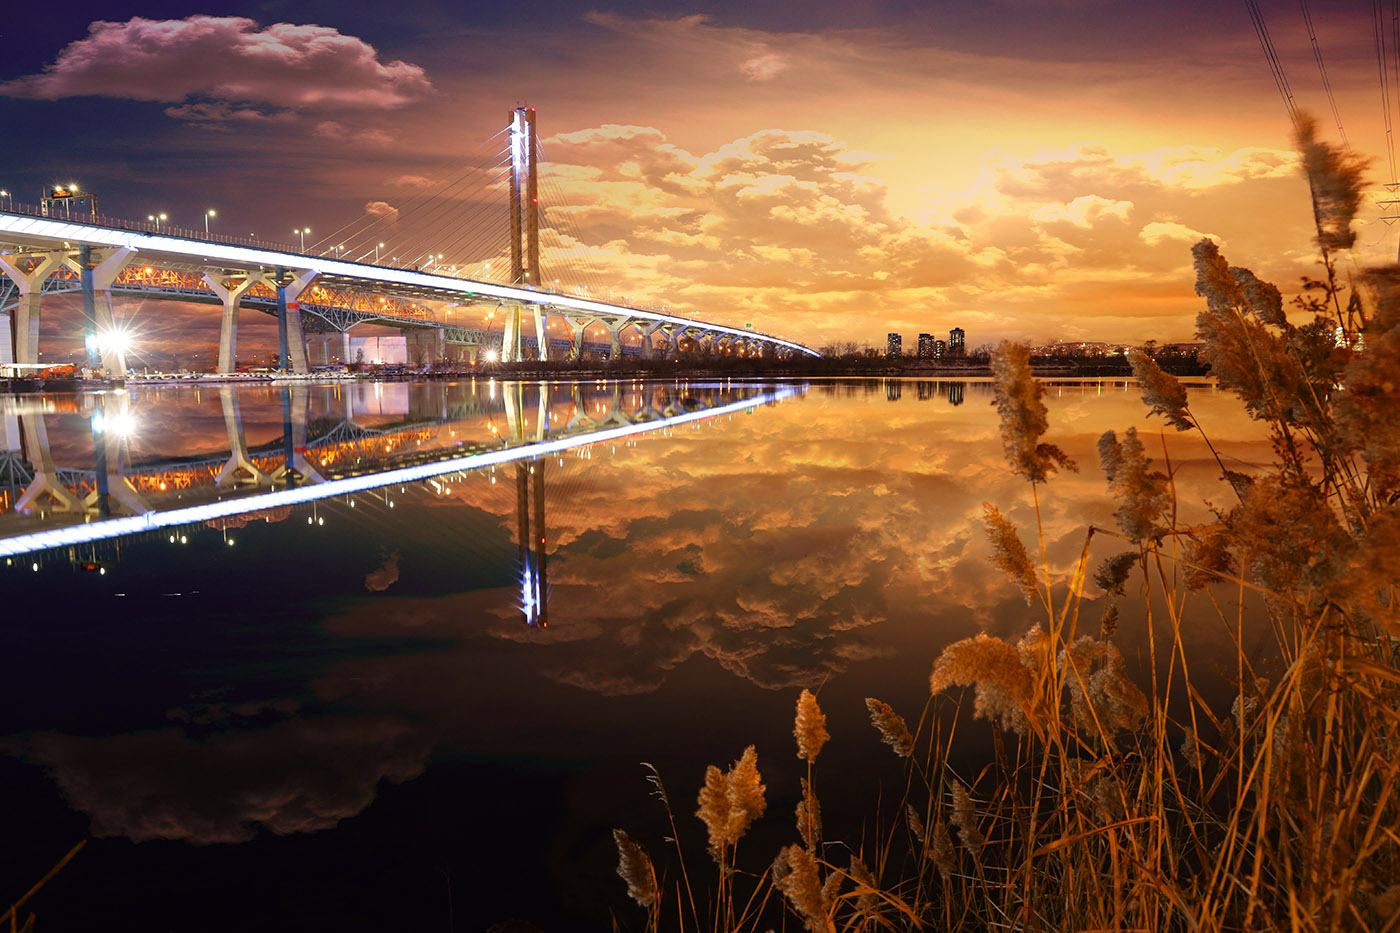 New Champlain Bridge in Montreal City at Night - Royalty-Free Stock Imagery